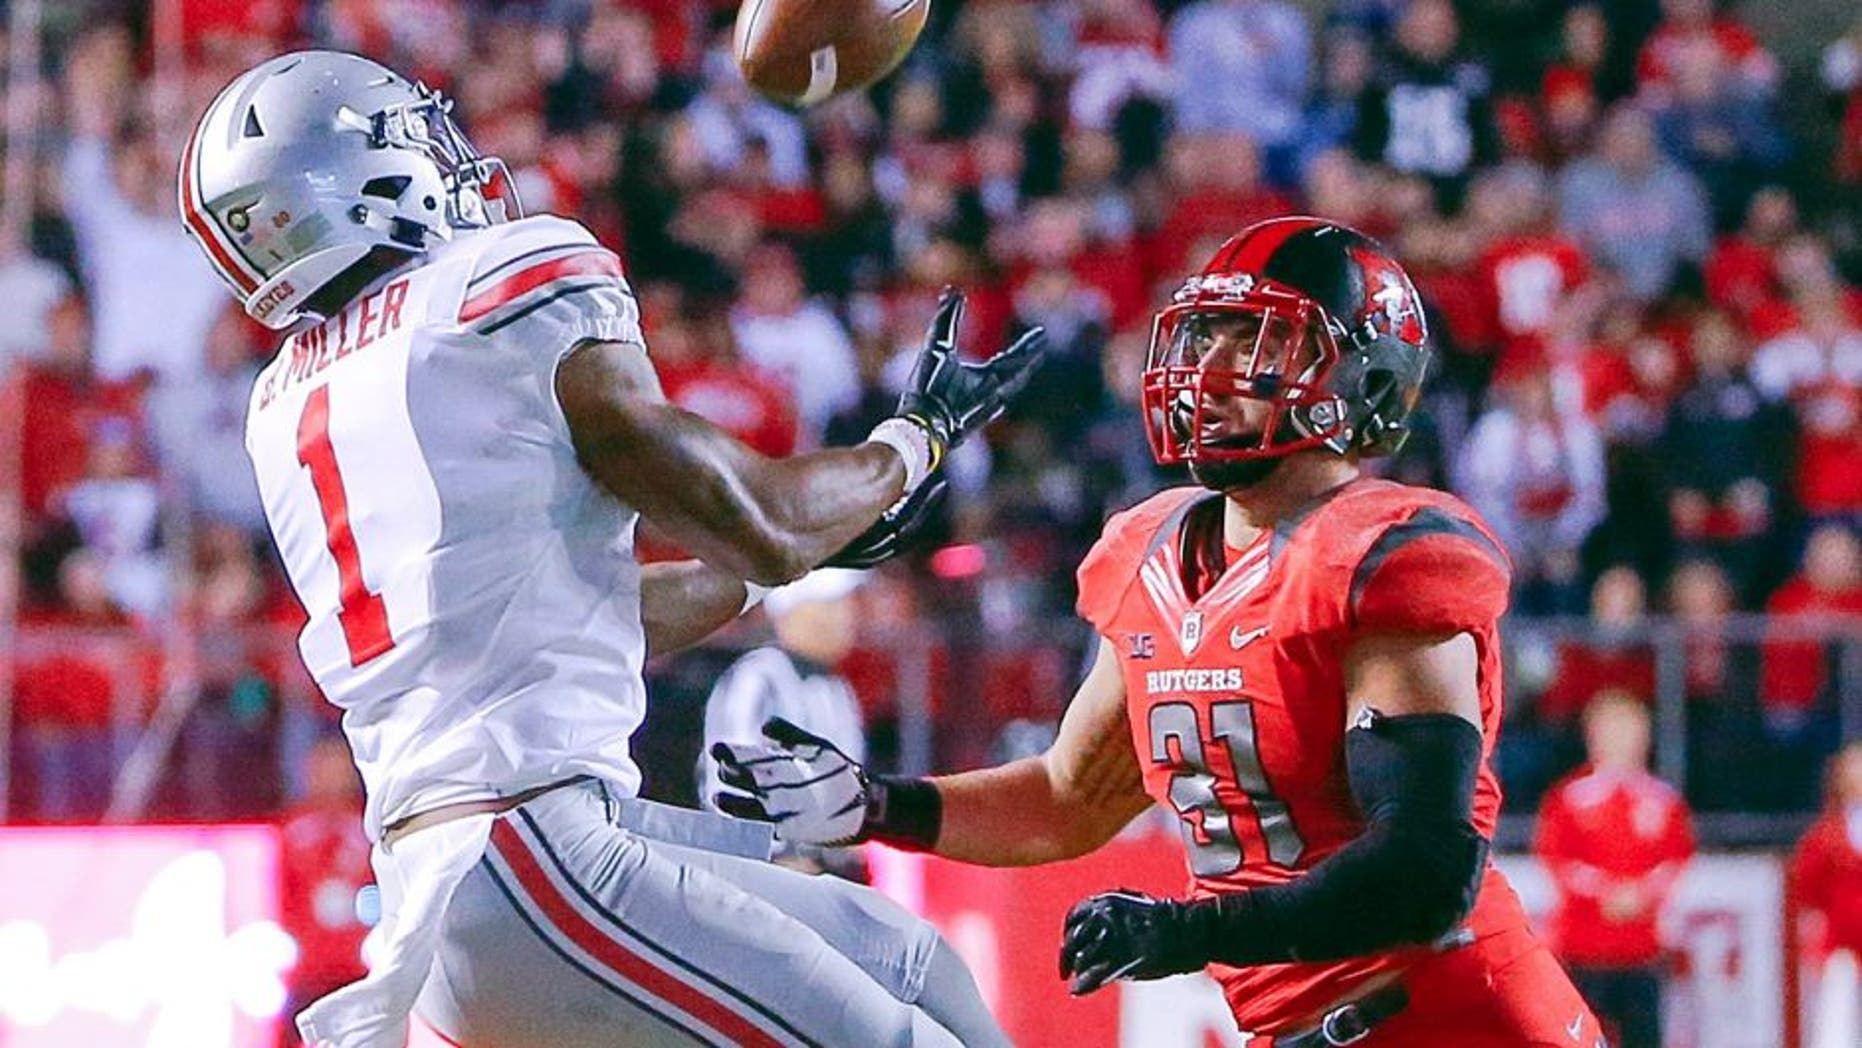 Oct 24, 2015; Piscataway, NJ, USA; Ohio State Buckeyes wide receiver Braxton Miller (1) pulls in long pass during the second quarter against Rutgers Scarlet Knights running back Charles Snorweah (21) at High Points Solutions Stadium. Mandatory Credit: Jim O'Connor-USA TODAY Sports